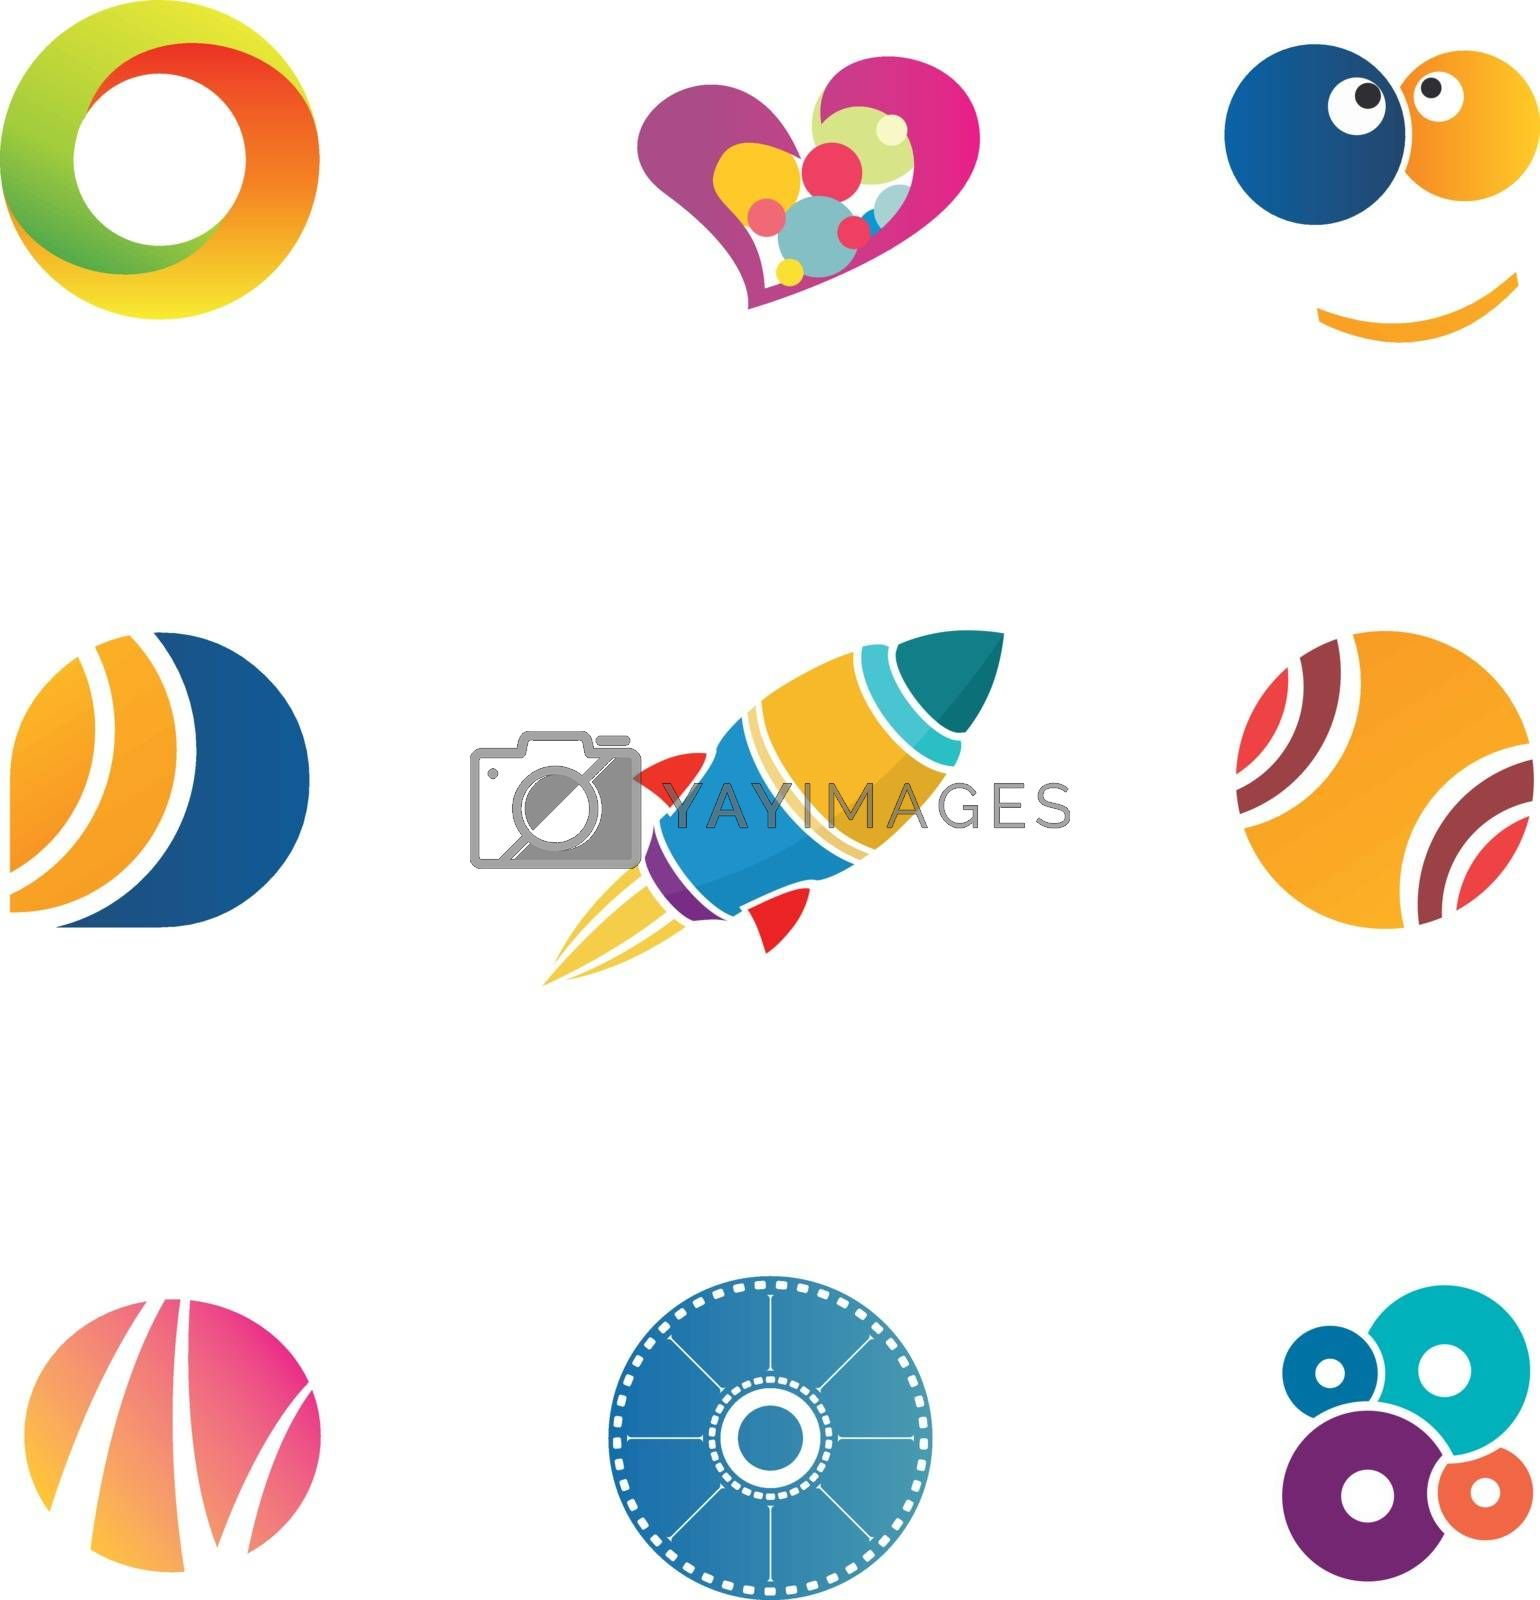 Royalty free image of Colorful abstact icons set by kisika